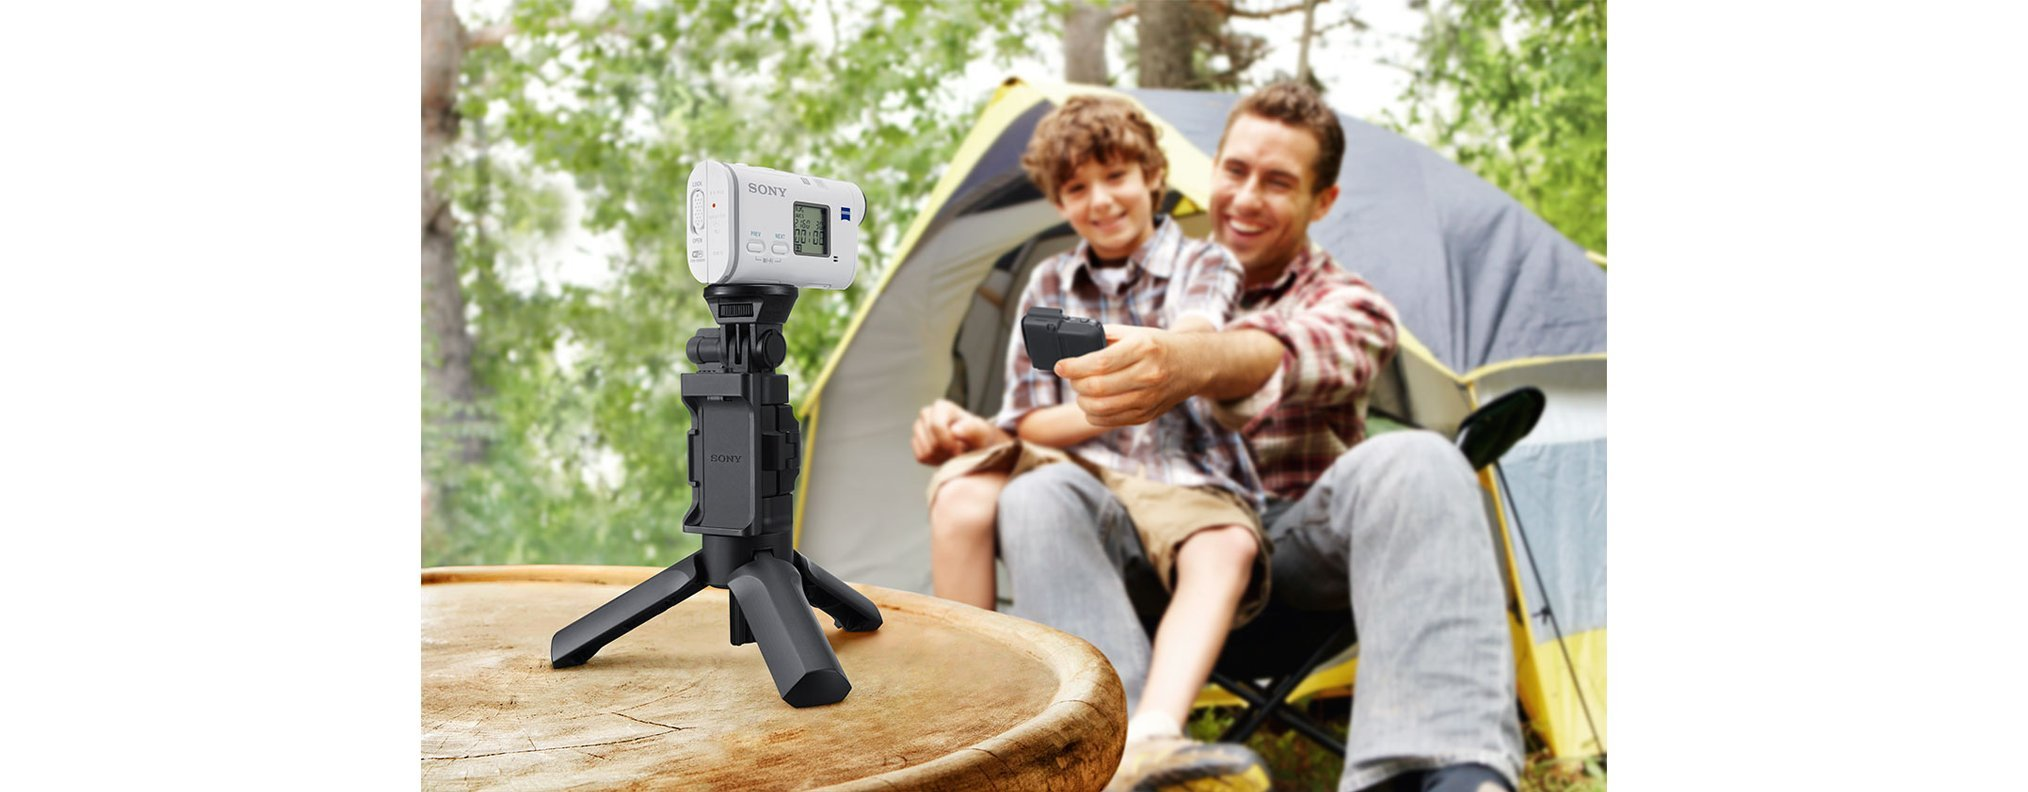 Sony VCT-STG1 Shooting Grip for Action Cam - Black